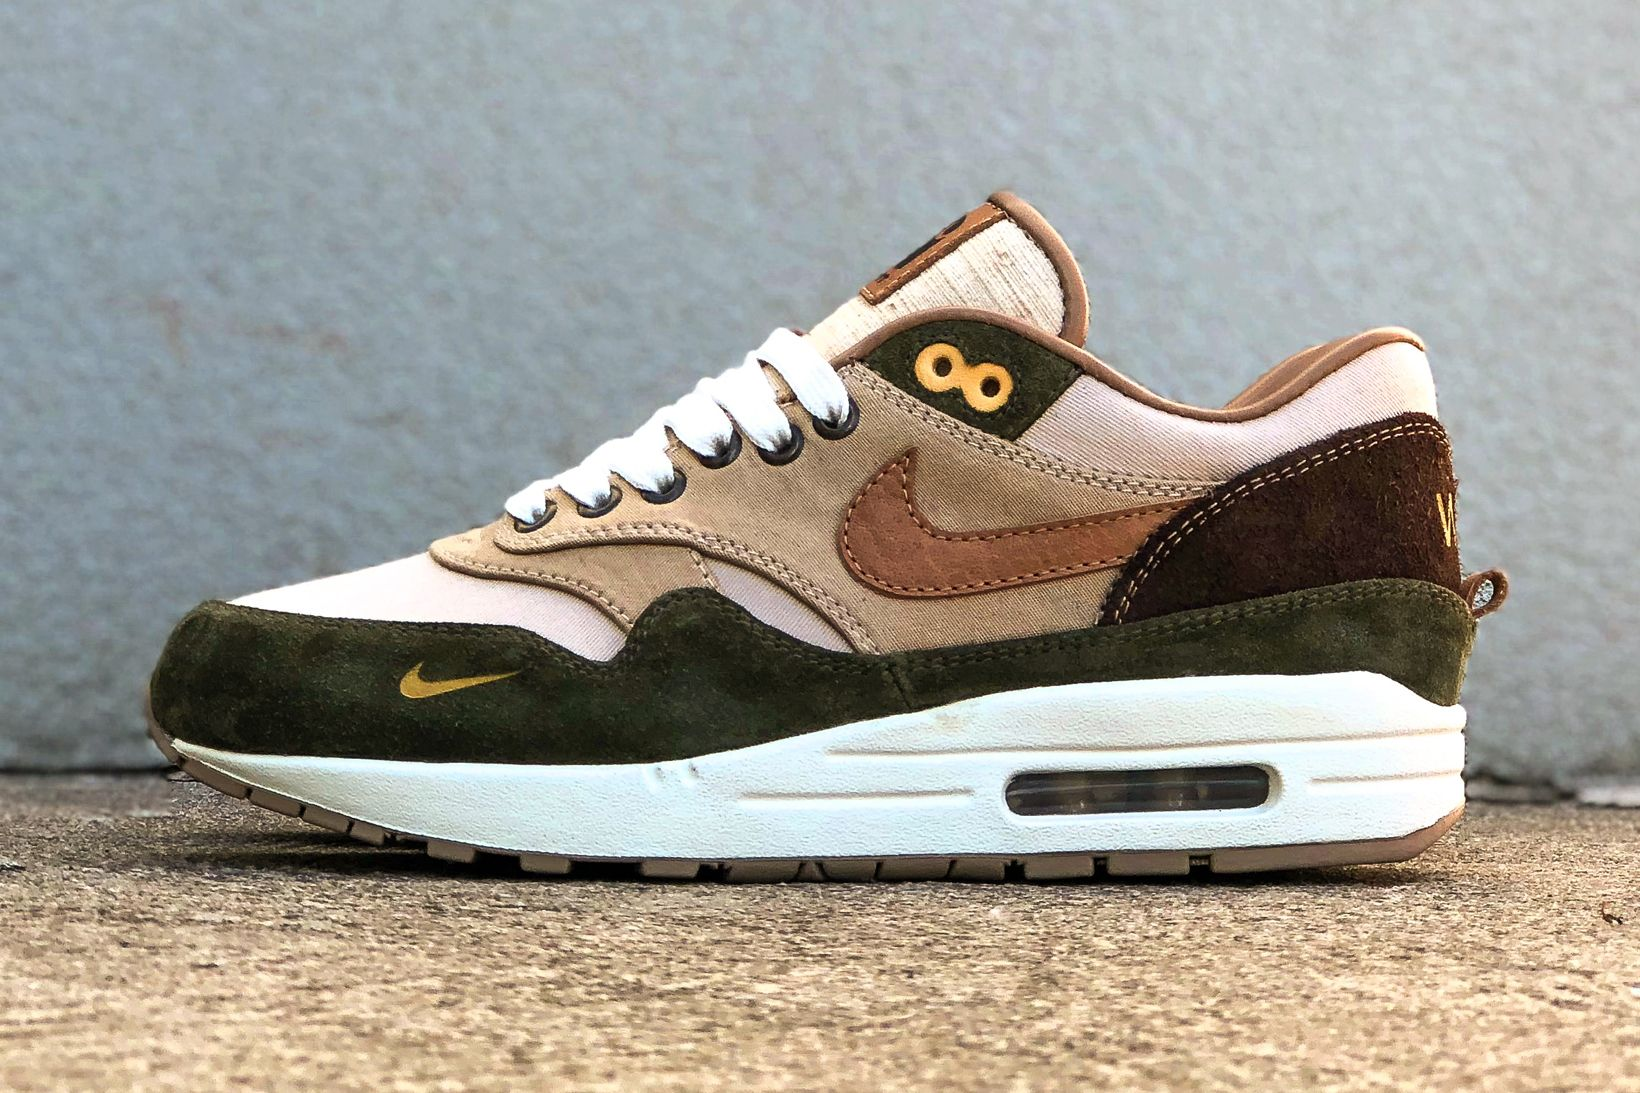 BespokeIND Unveils a Carhartt WIP Inspired Nike Air Max 1